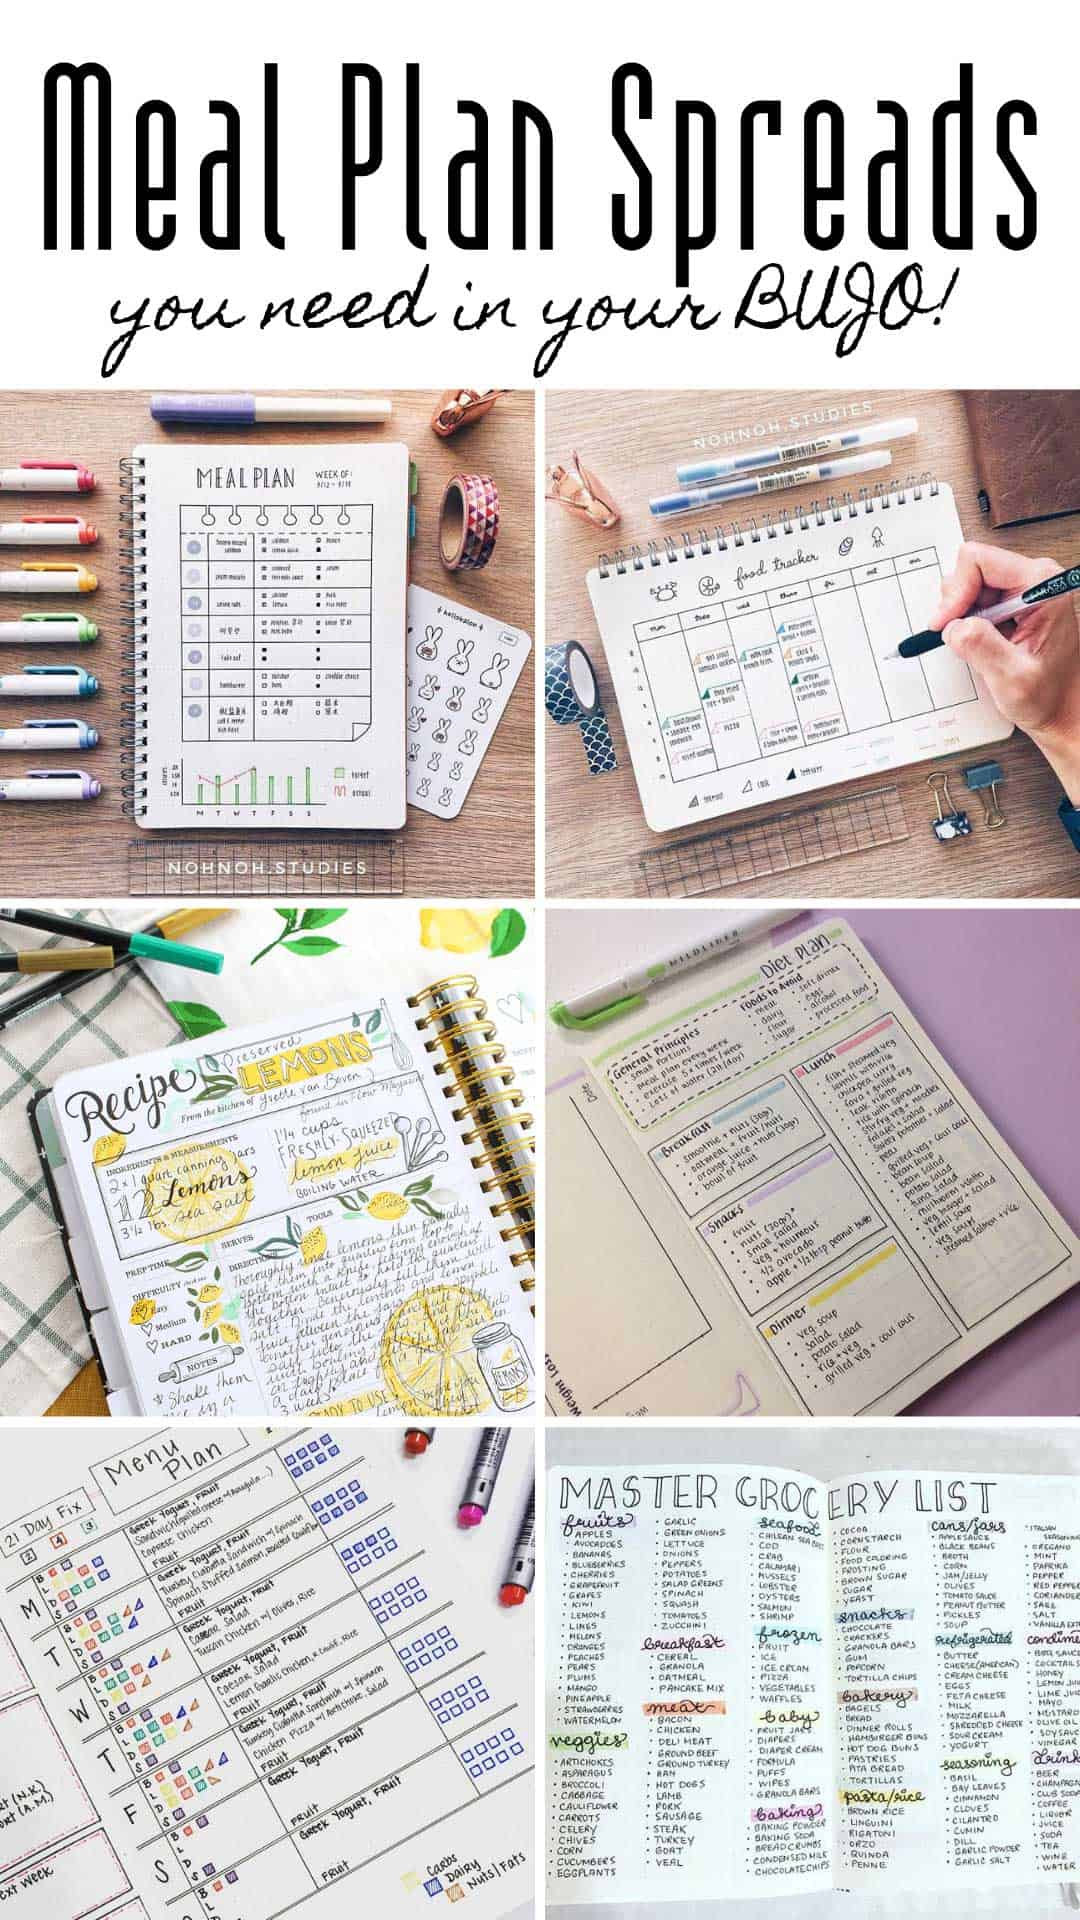 These meal planning bullet journal spreads and ideas are just what you need to plan next week's meal prep. From the menu and your go to recipes to your grocery list. #bulletjournal #mealprep #mealplanning